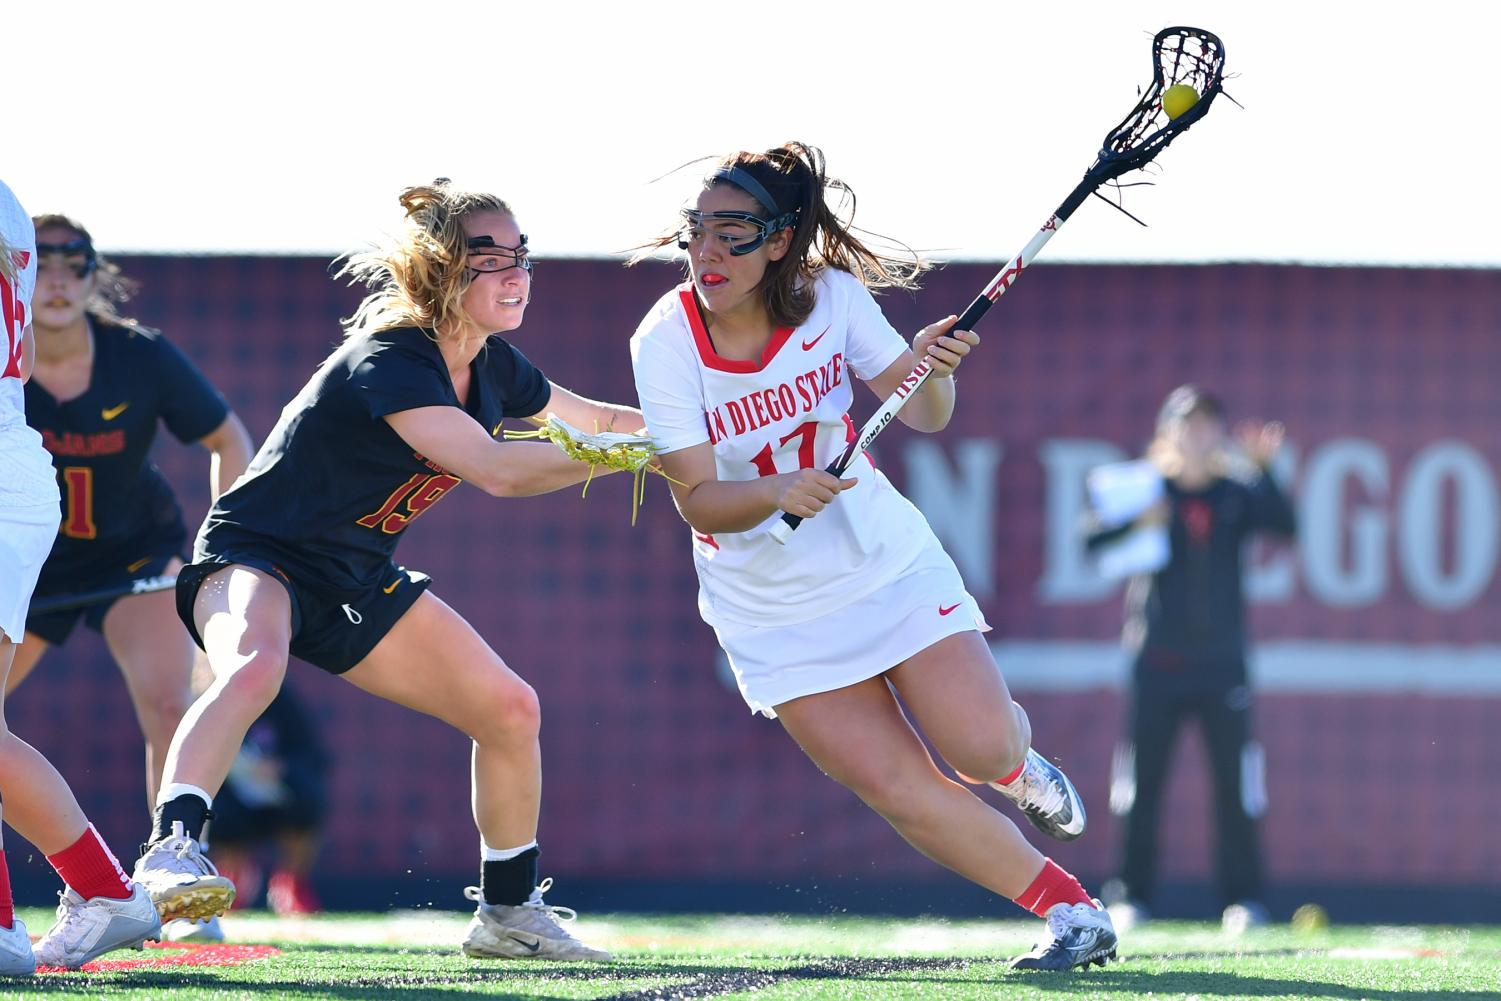 Senior midfielder Harlowe Steele takes on the USC defender during the Aztecs' 20-16 loss to the Trojans on Feb. 22 at the Aztec Lacrosse Field.